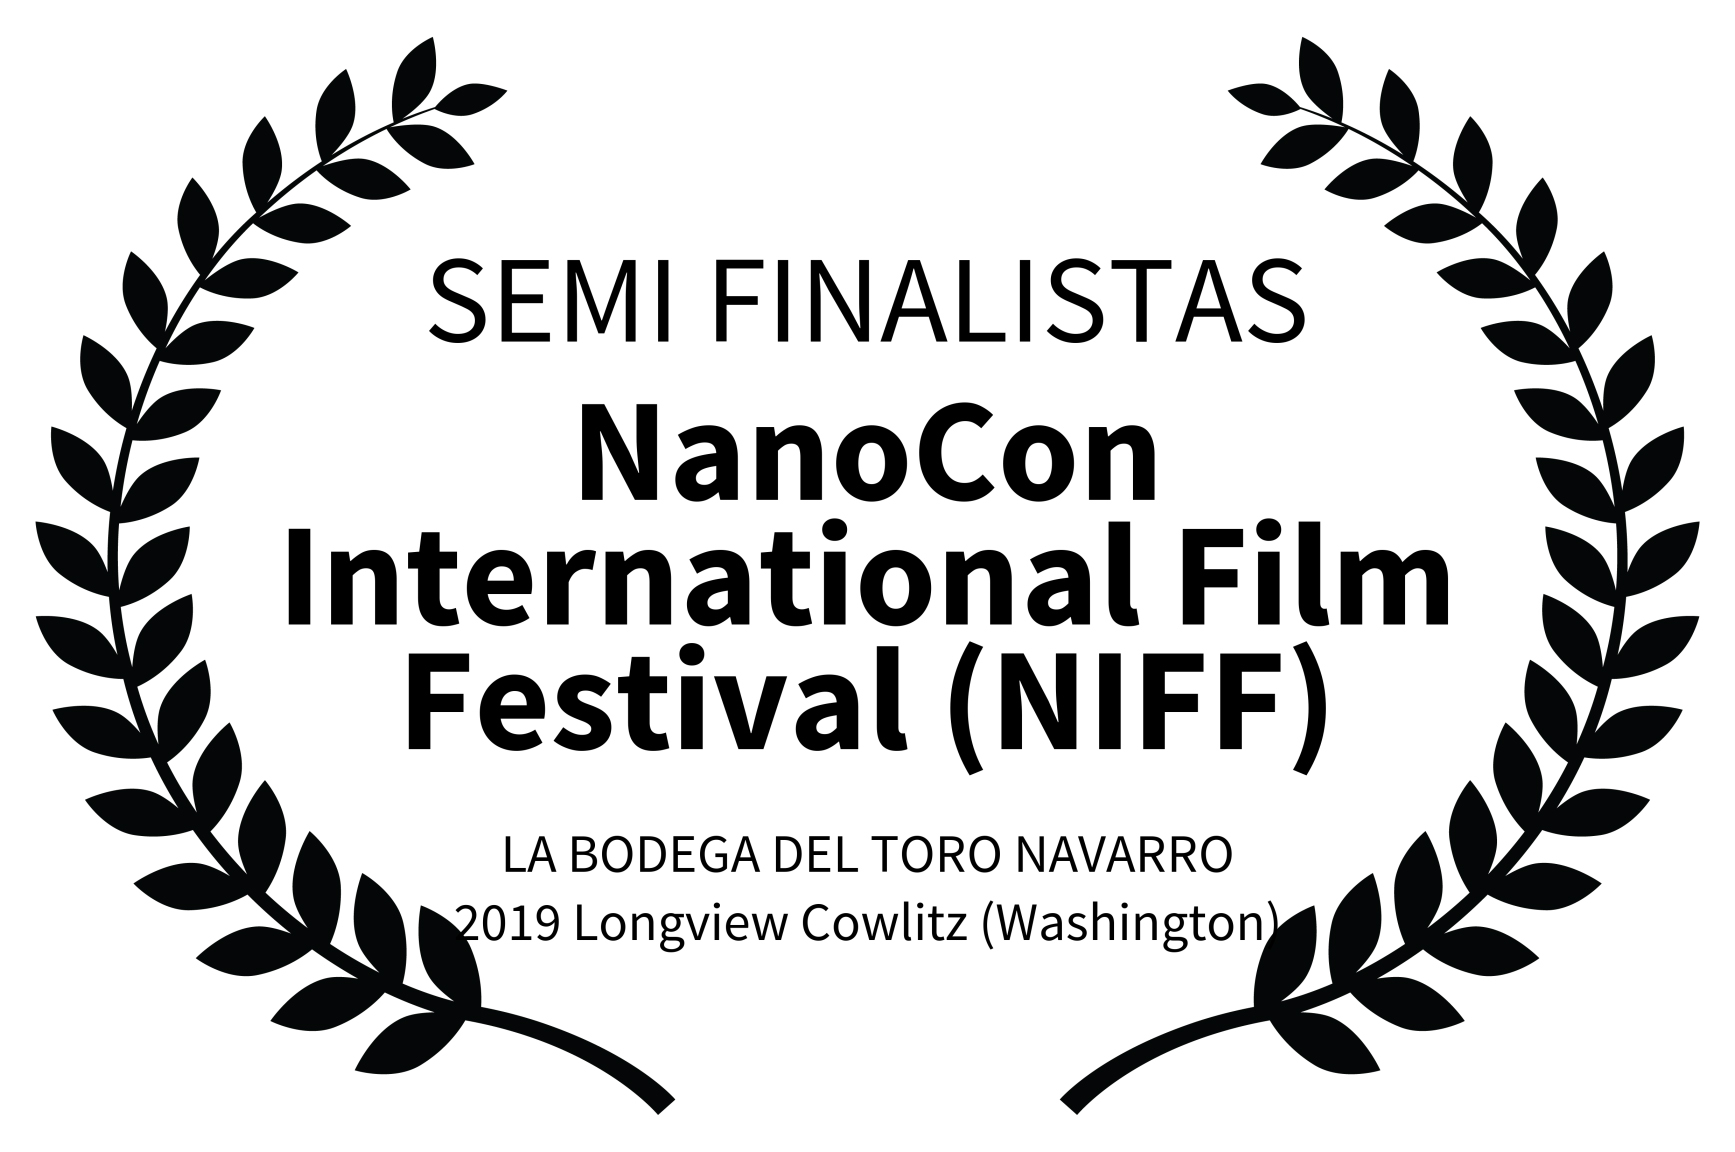 SEMI FINALISTAS - NanoCon International